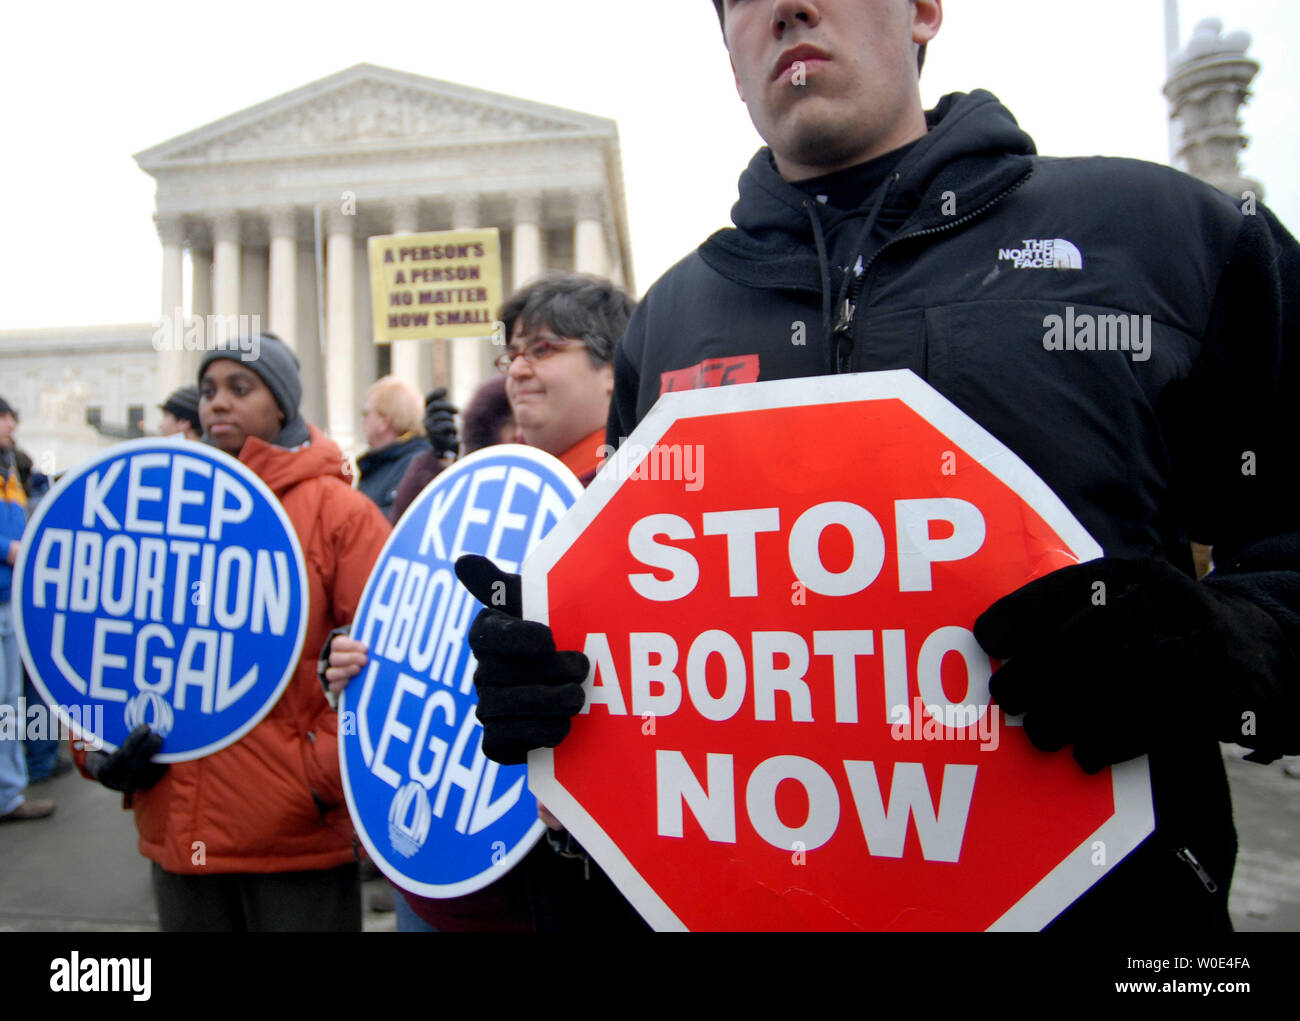 "Both Pro-life and Pro-Choice activists rally in front of the United States States Supreme Court during the ""March for Life"" anti-abortion demonstration in Washington on January 22, 2008. The demonstration marked the 35th anniversary of the Supreme Court's 1973 decision in Roe vs Wade making abortions legal. (UPI Photo/Kevin Dietsch) Stock Photo"